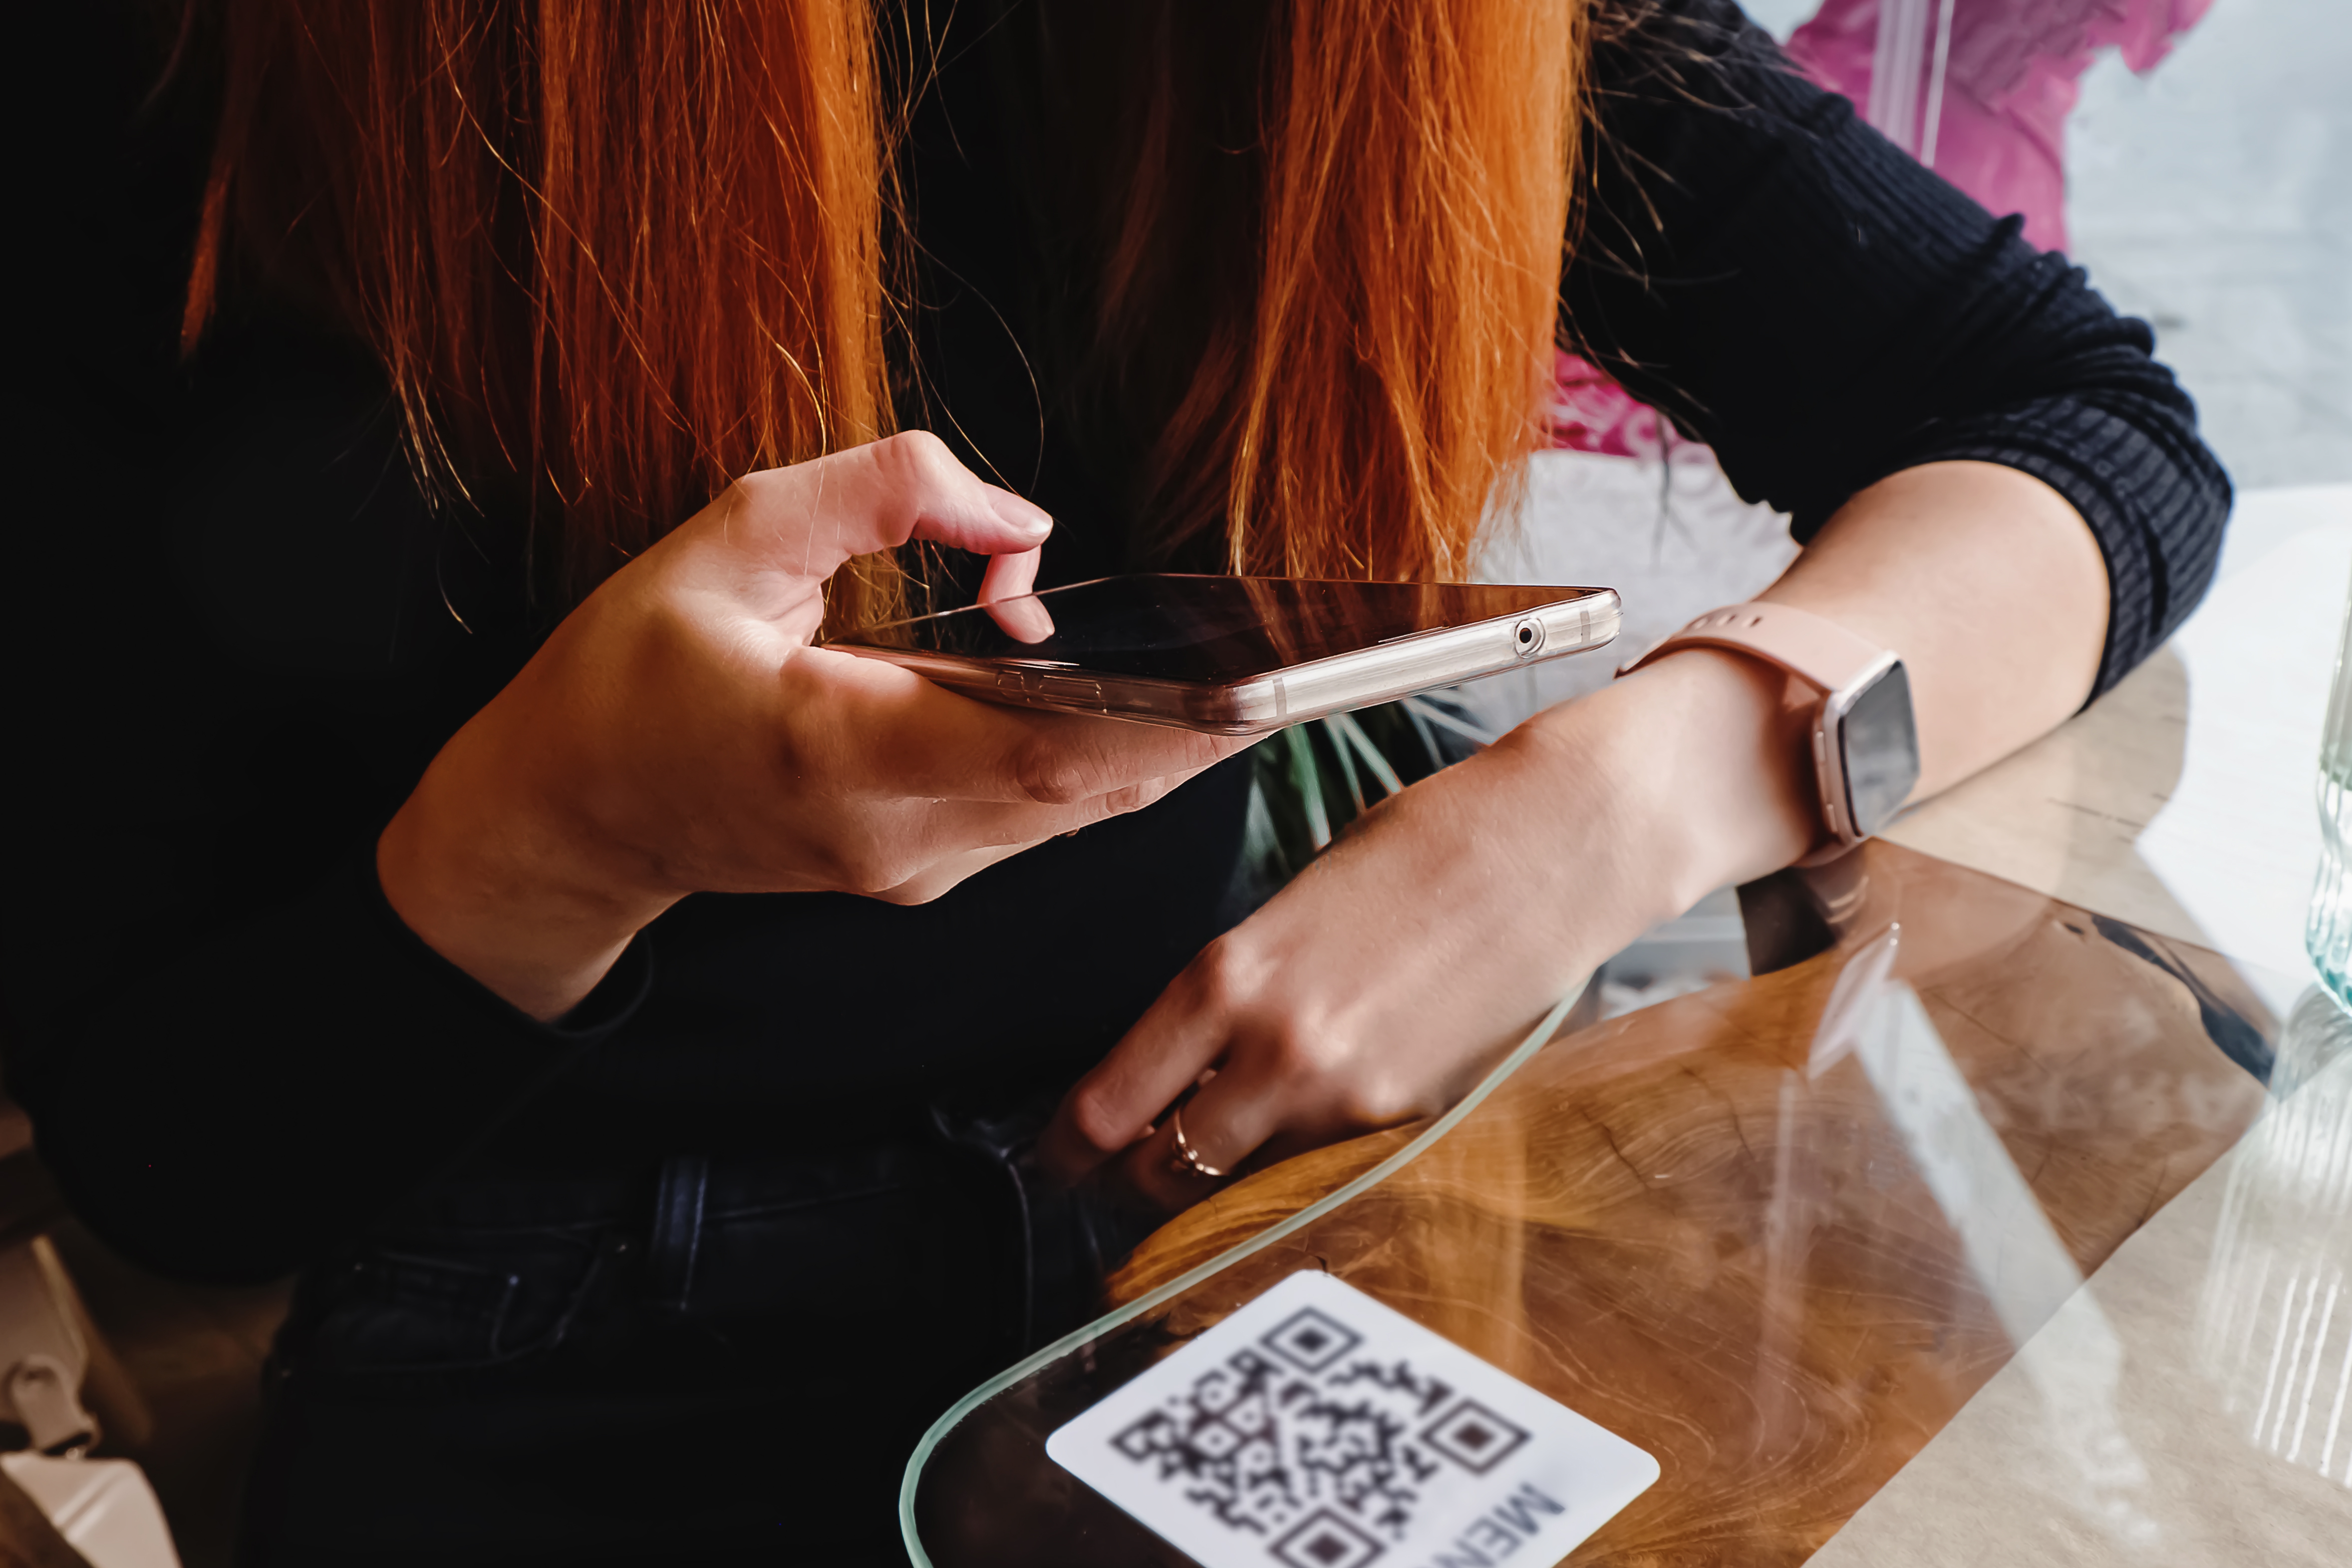 A person scanning a QR code with mobile phone